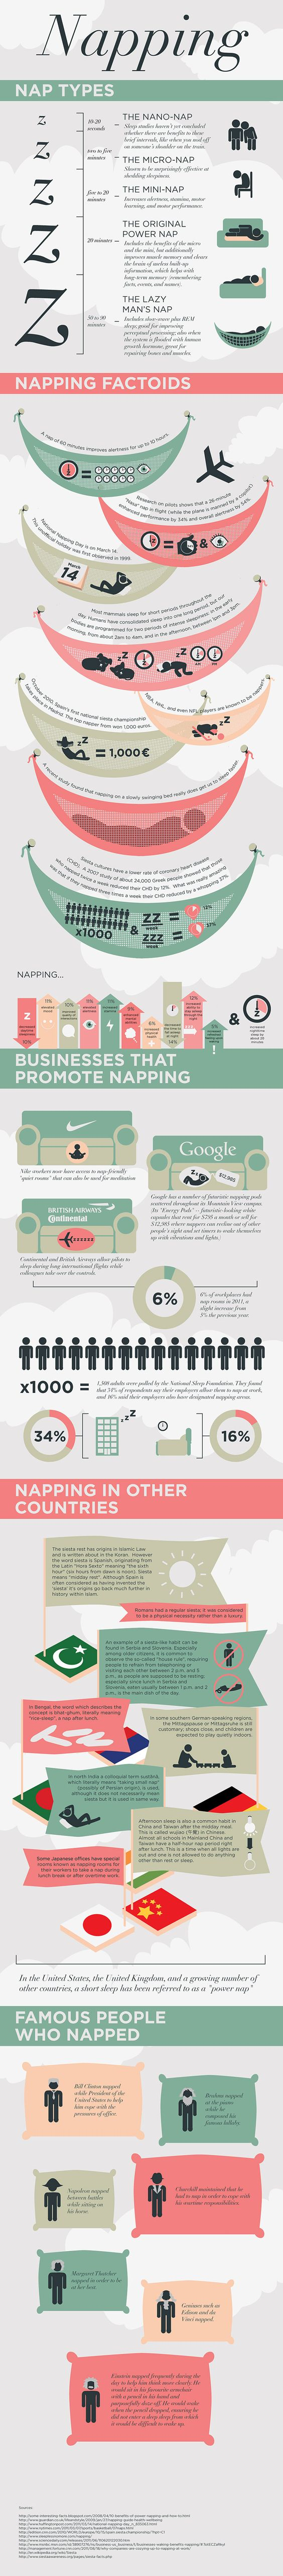 why your office should have a nap room infographic business nap office relieve